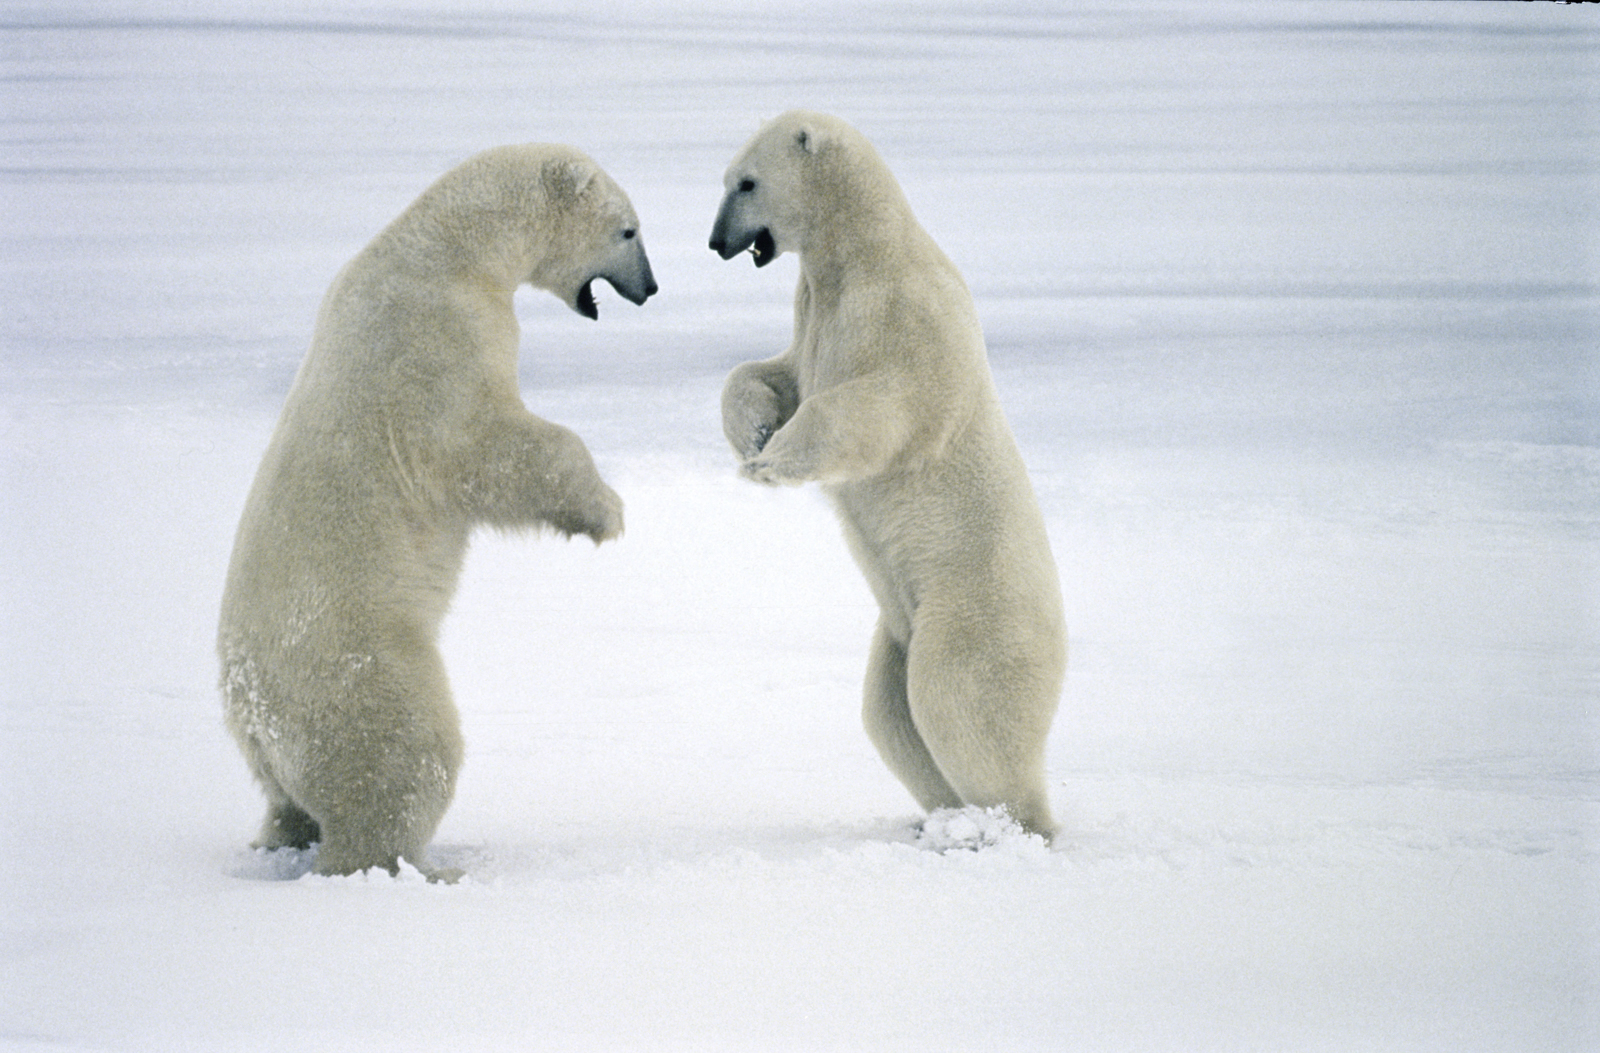 Polar bears sparring, Hudson Bay, Canada